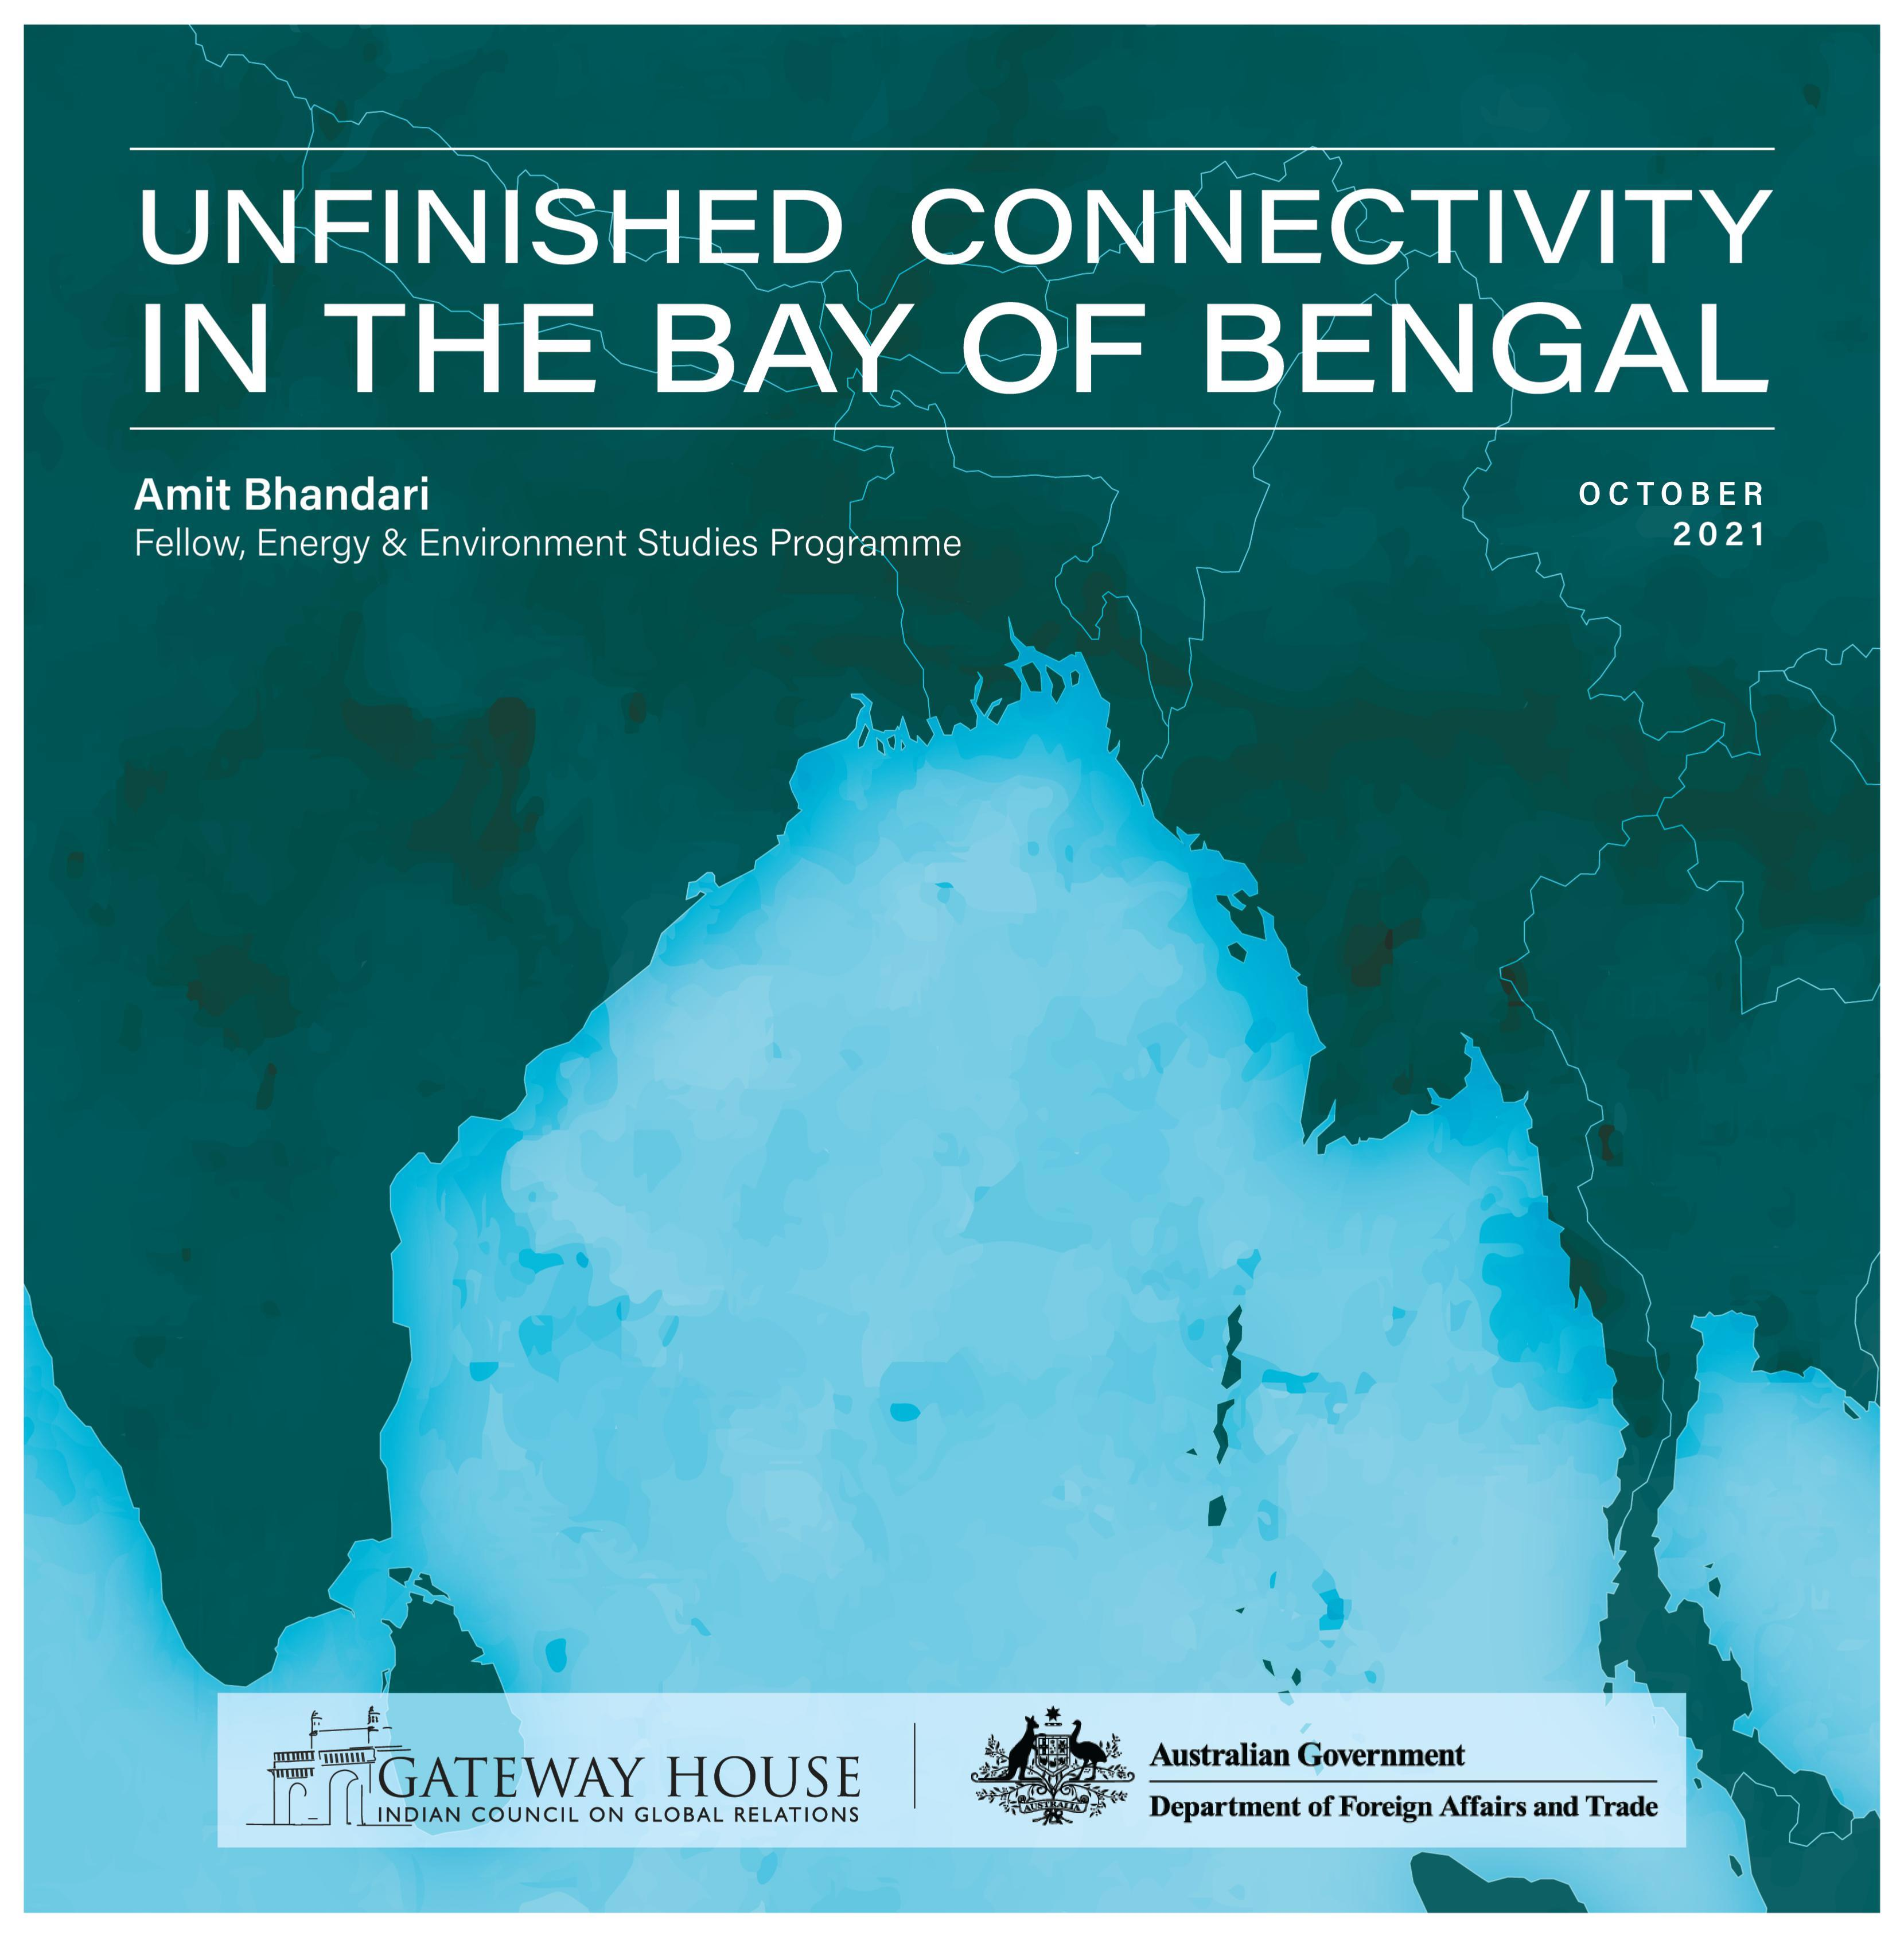 Unfinished Connectivity in the Bay of Bengal